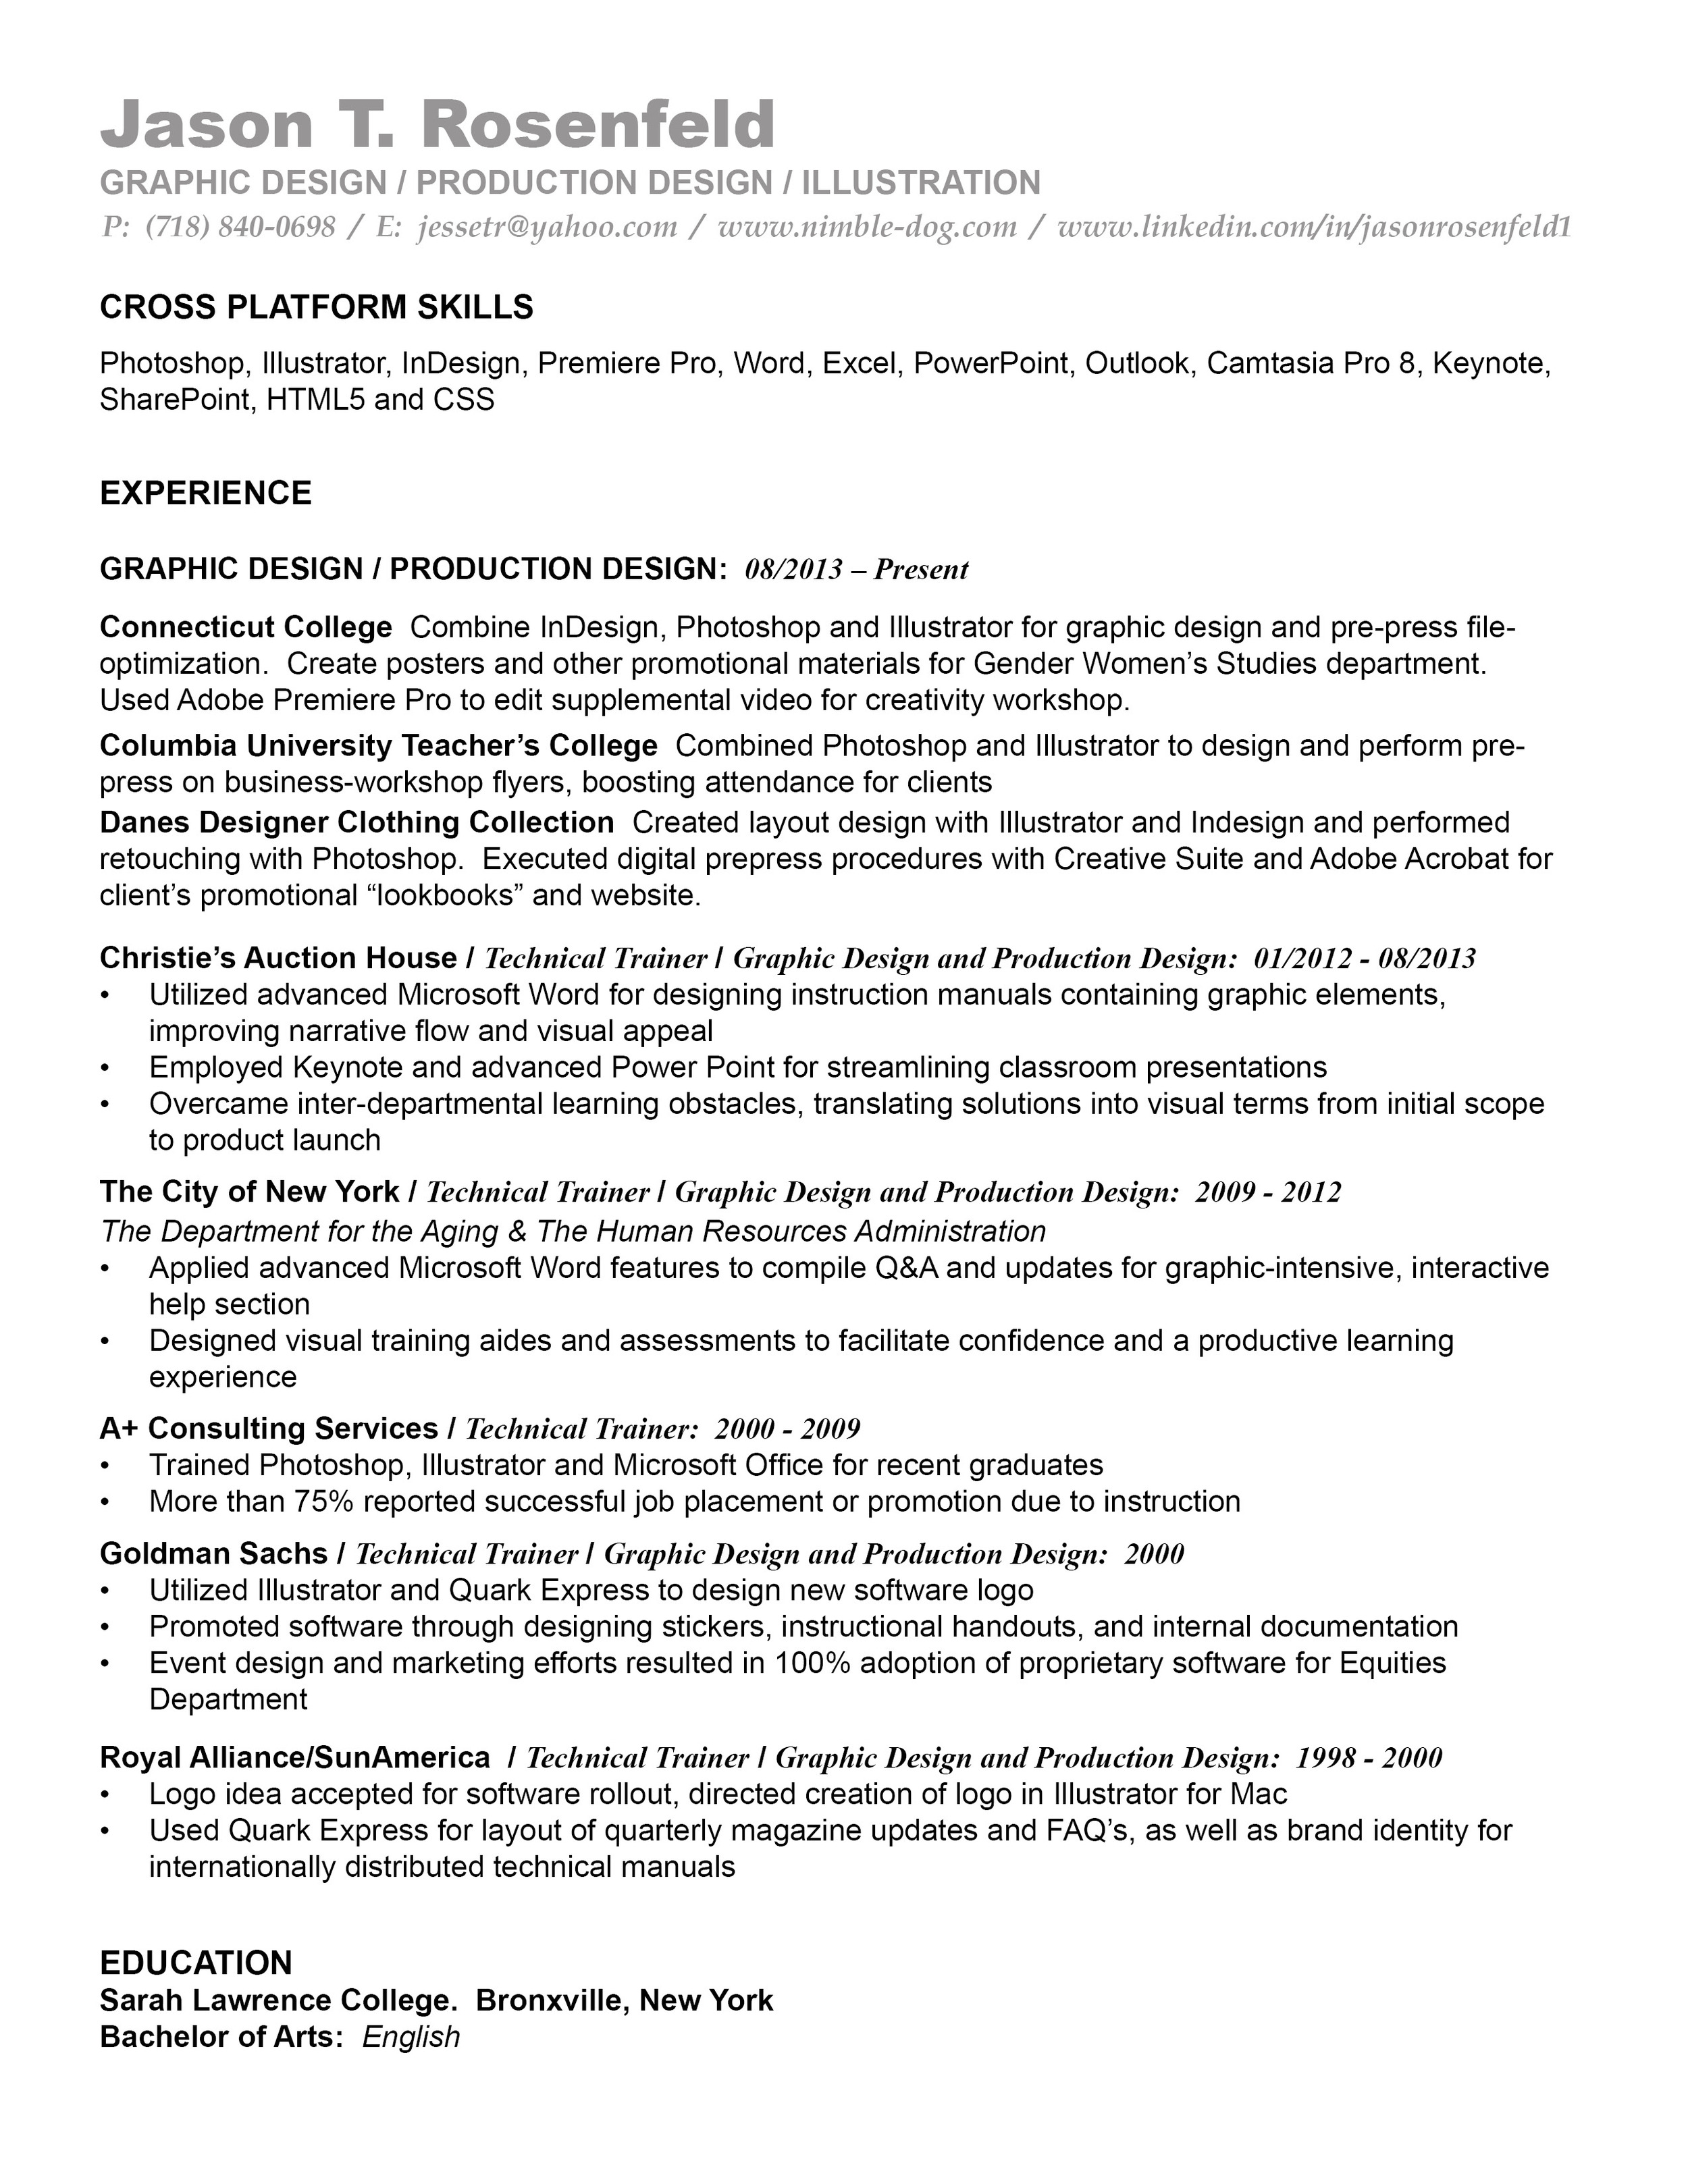 Graphic and Production Design Resume